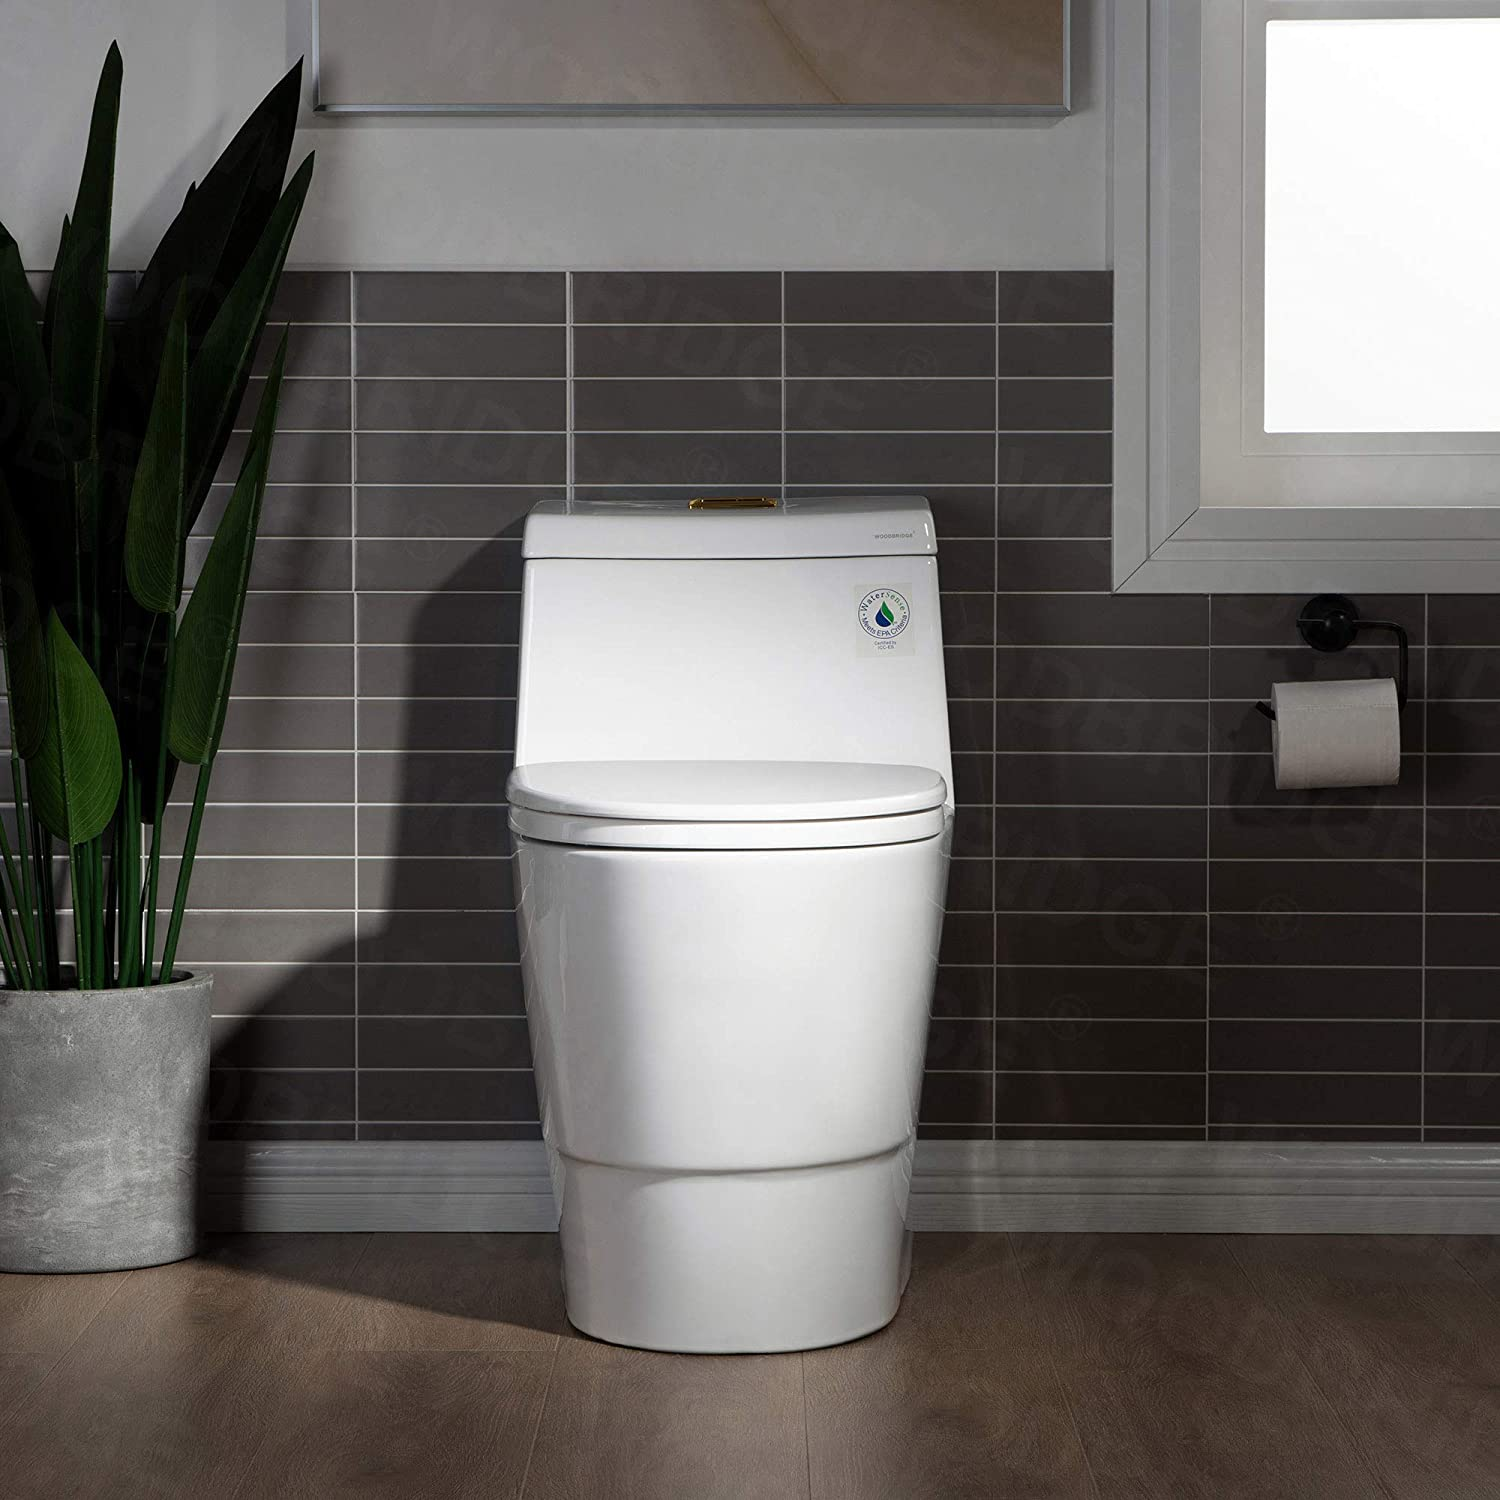 WOODBRIDGE 67% OFF of Beauty products fixed price T-0001-BG Toilet with Brushed Gold Button